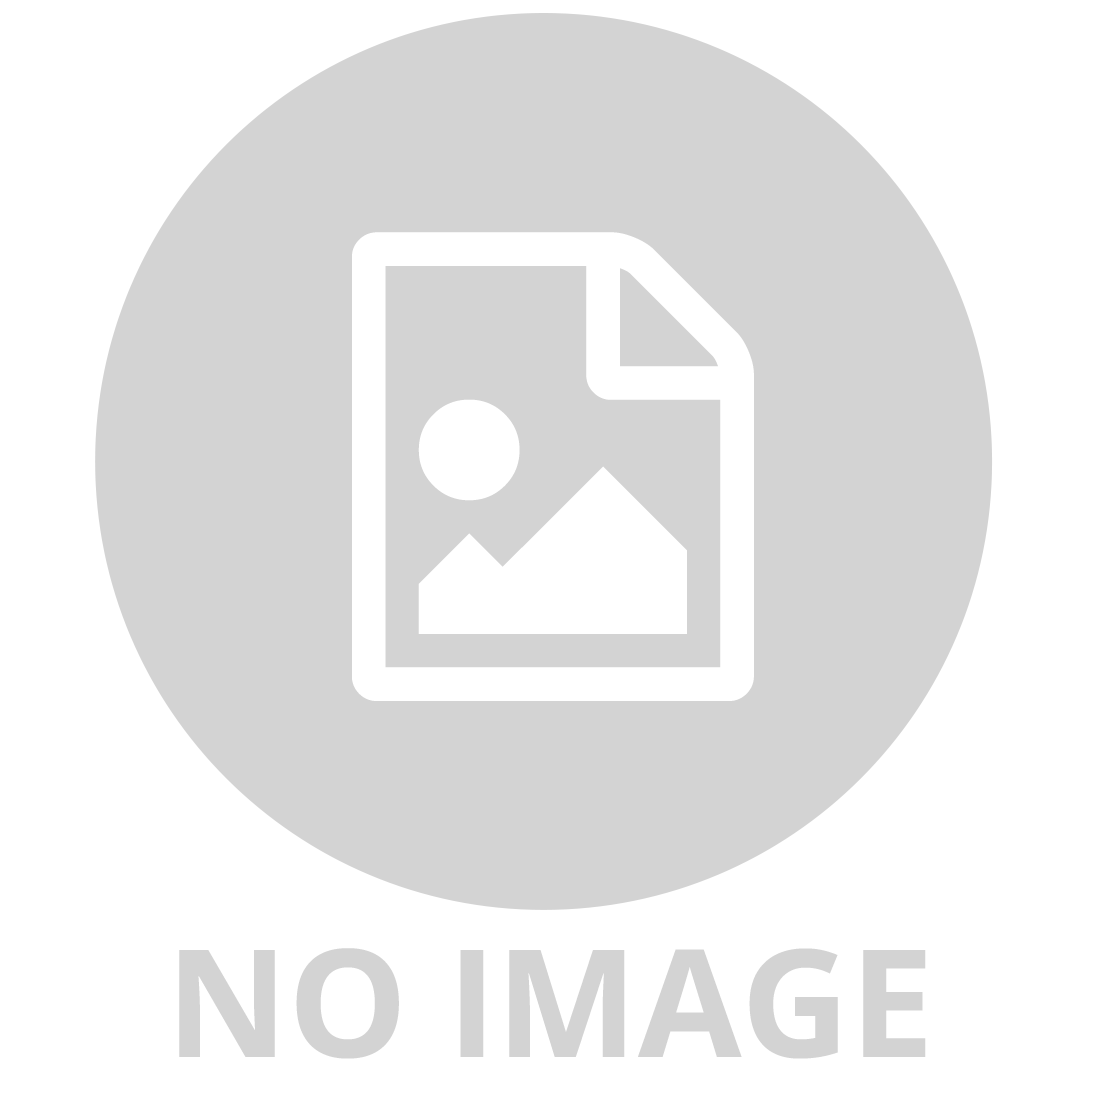 BANDSTAND 61 KEY ELECTRONIC KEYBOARD